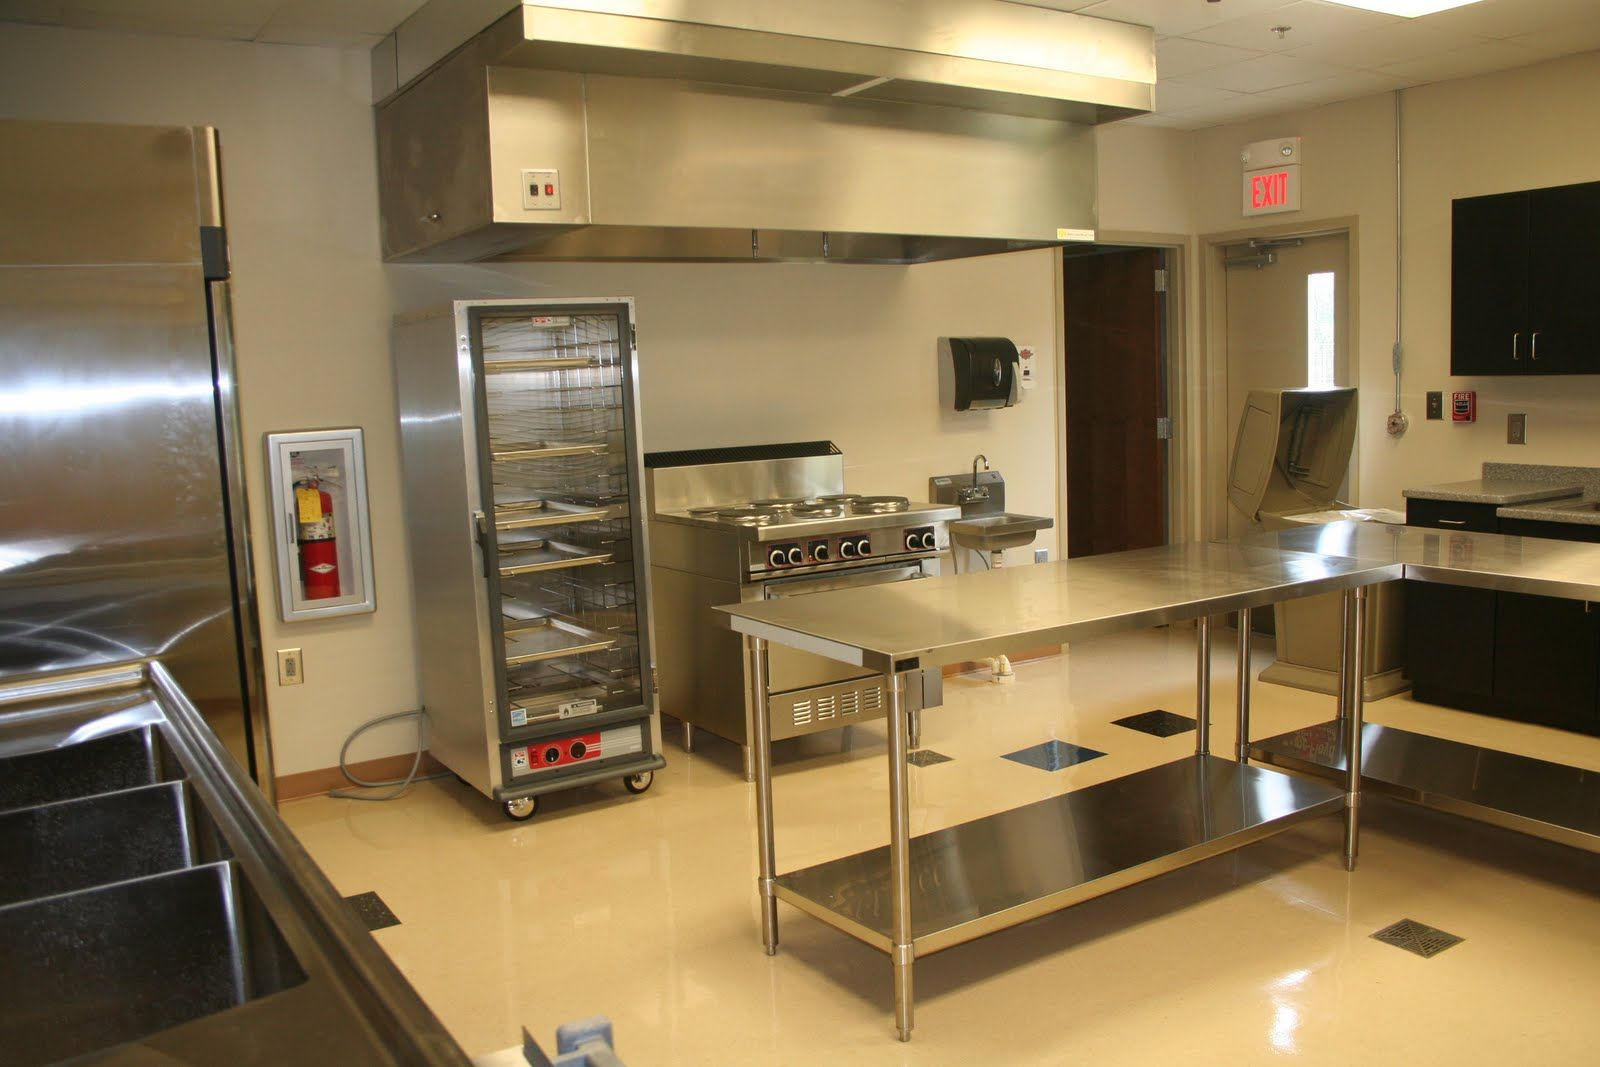 This Is Our Commercial Kitchen In The Basement The Kitchen Upstairs Is For Show For The Home